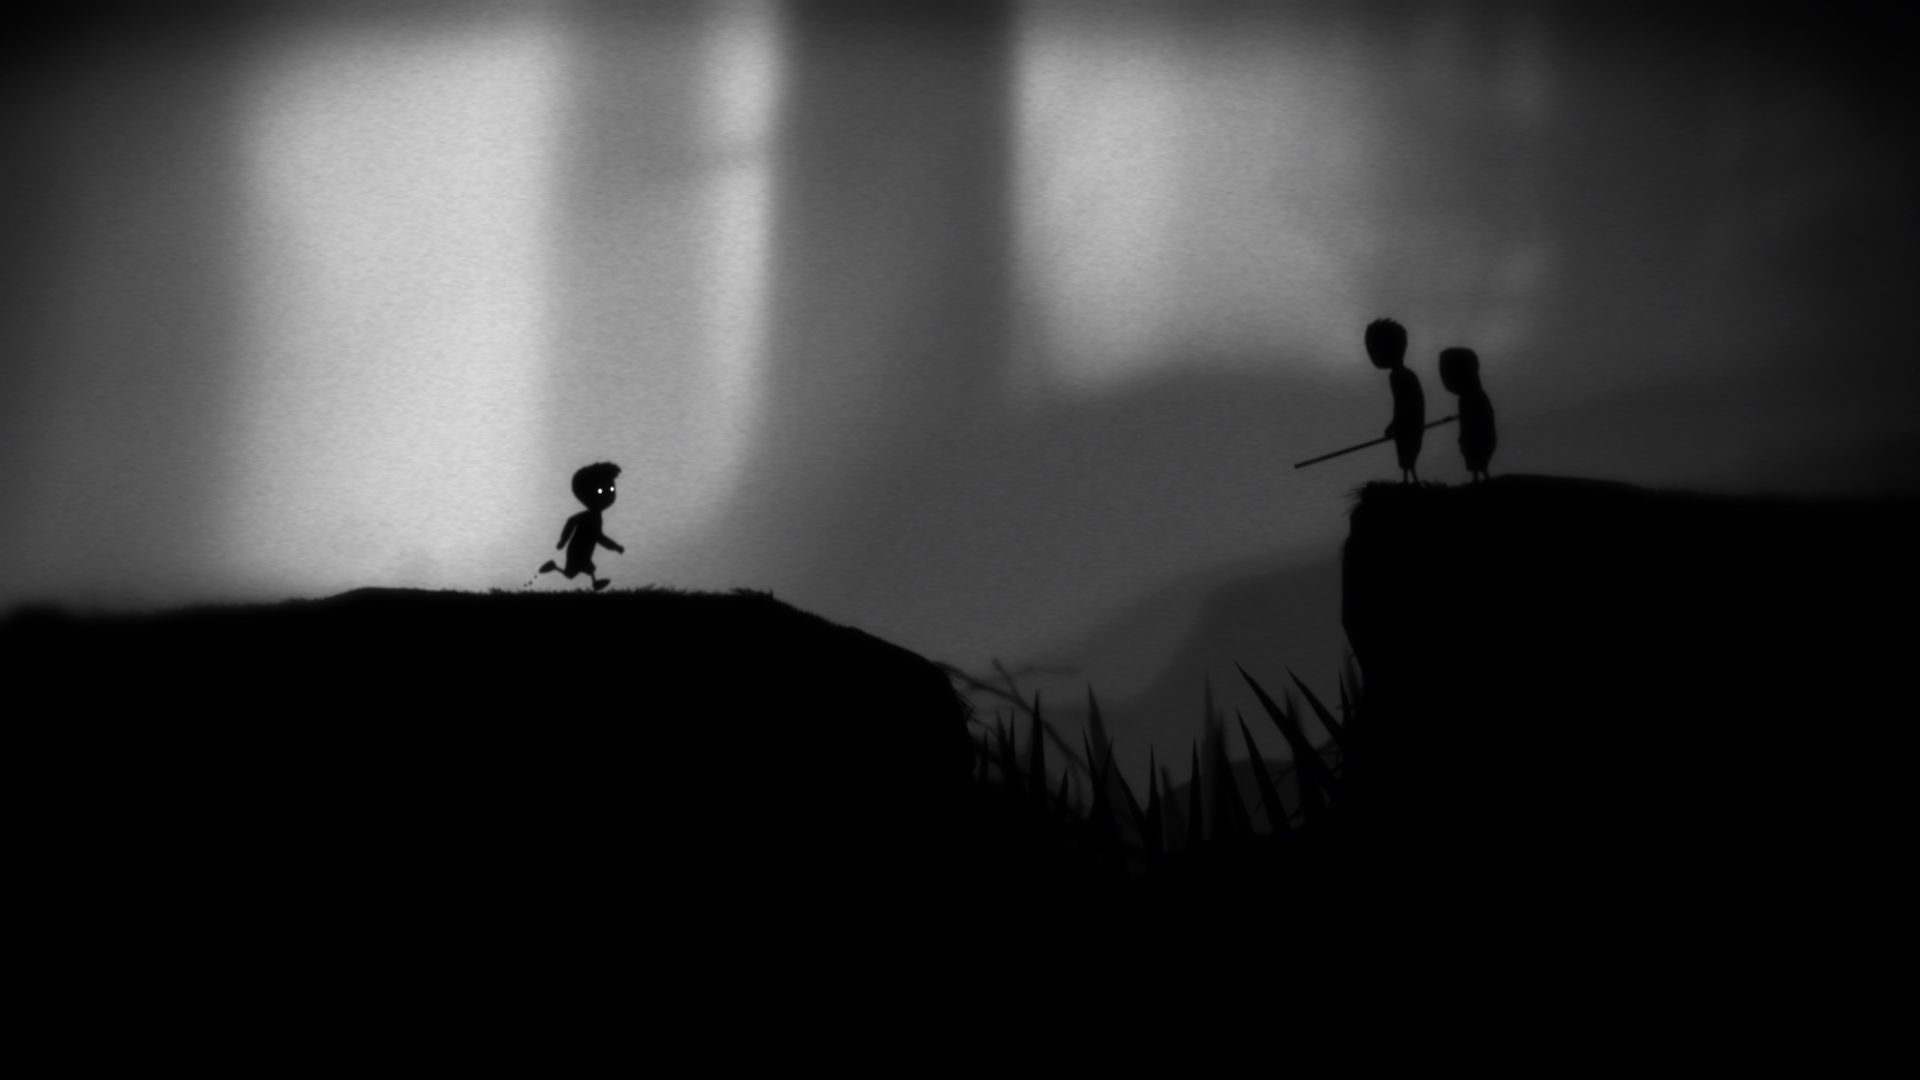 Limbo Game Ipad Games Indie Games Latest Games